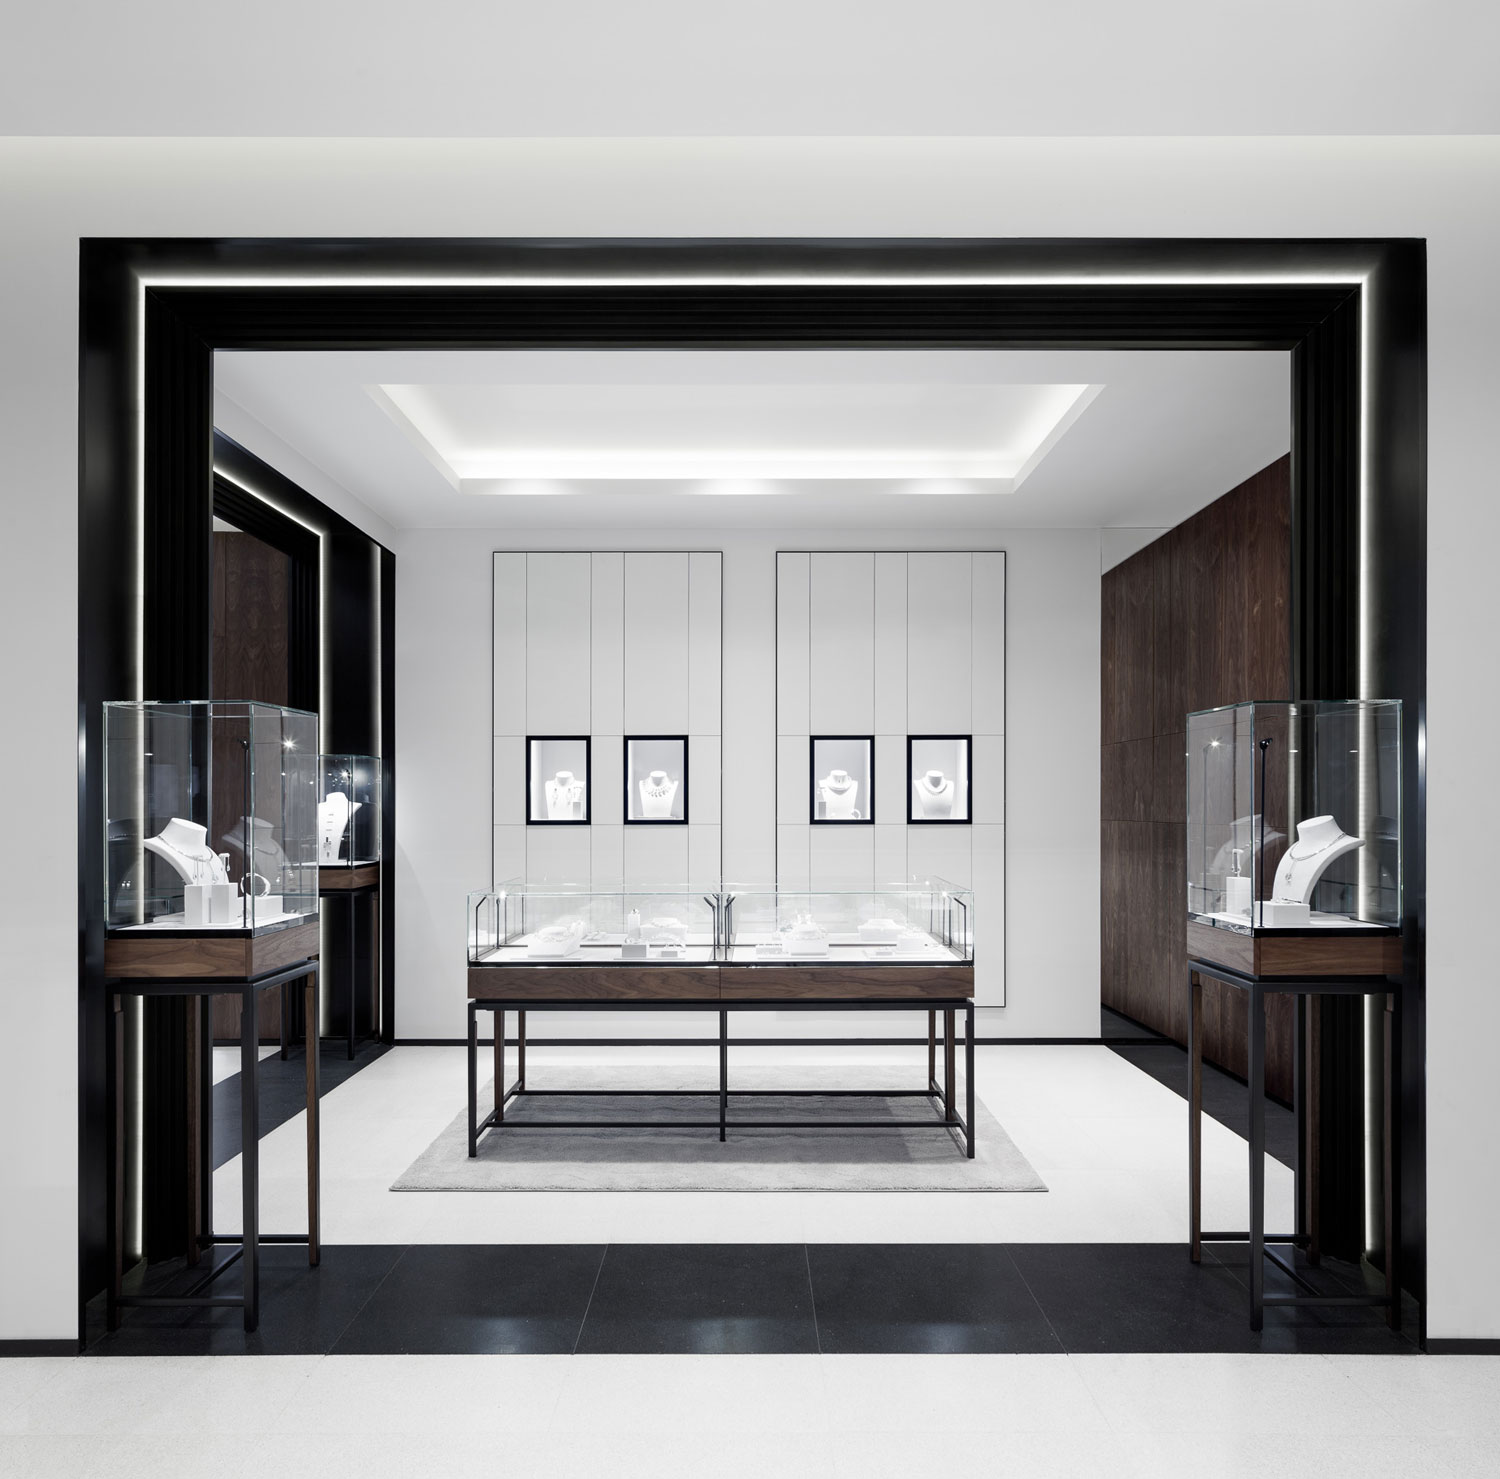 Georg jensen 39 s london boutique by studio david thulstrup for Retail interior design agency london